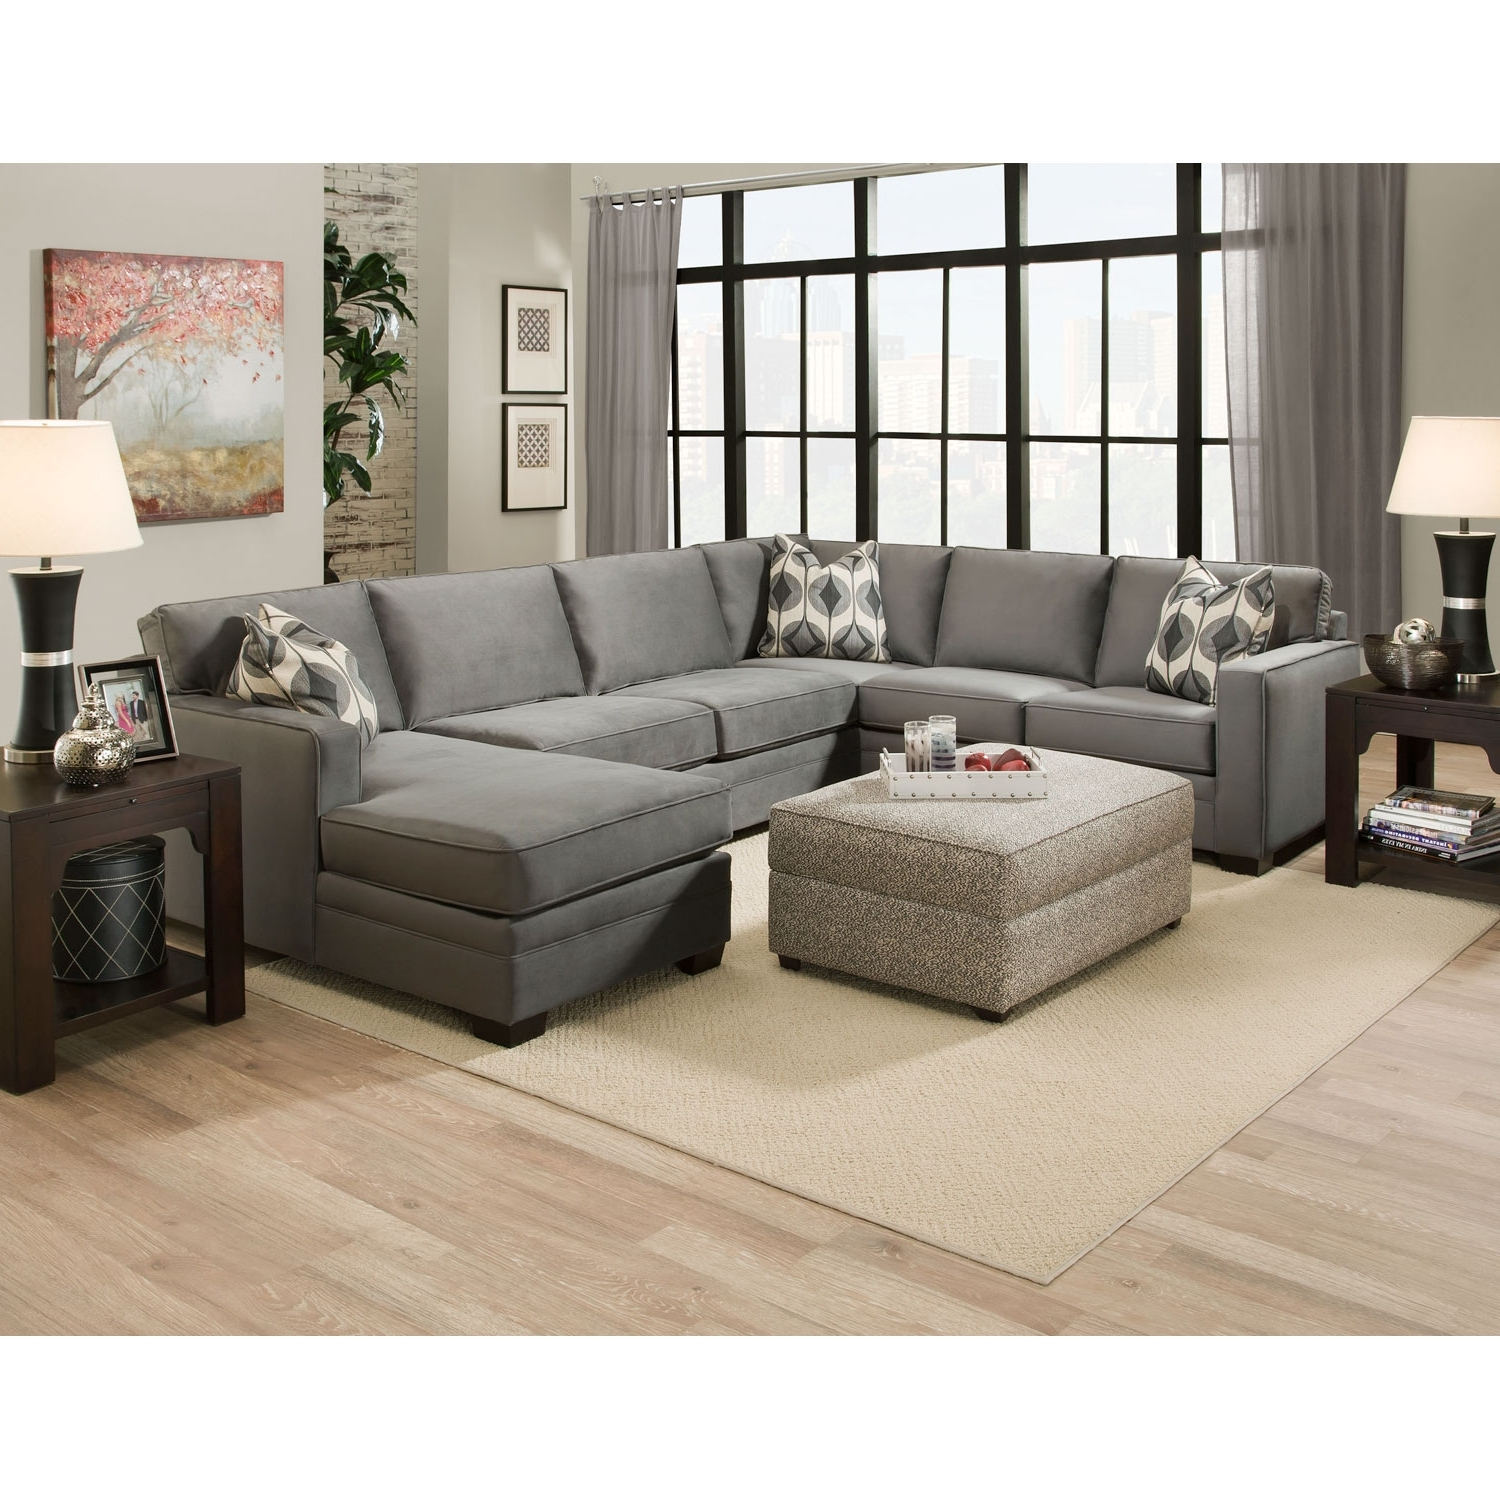 Gray Extra Large U Shaped Sectional Sofa With Chaise And Accent With Trendy Extra Large Sectional Sofas With Chaise (View 7 of 15)